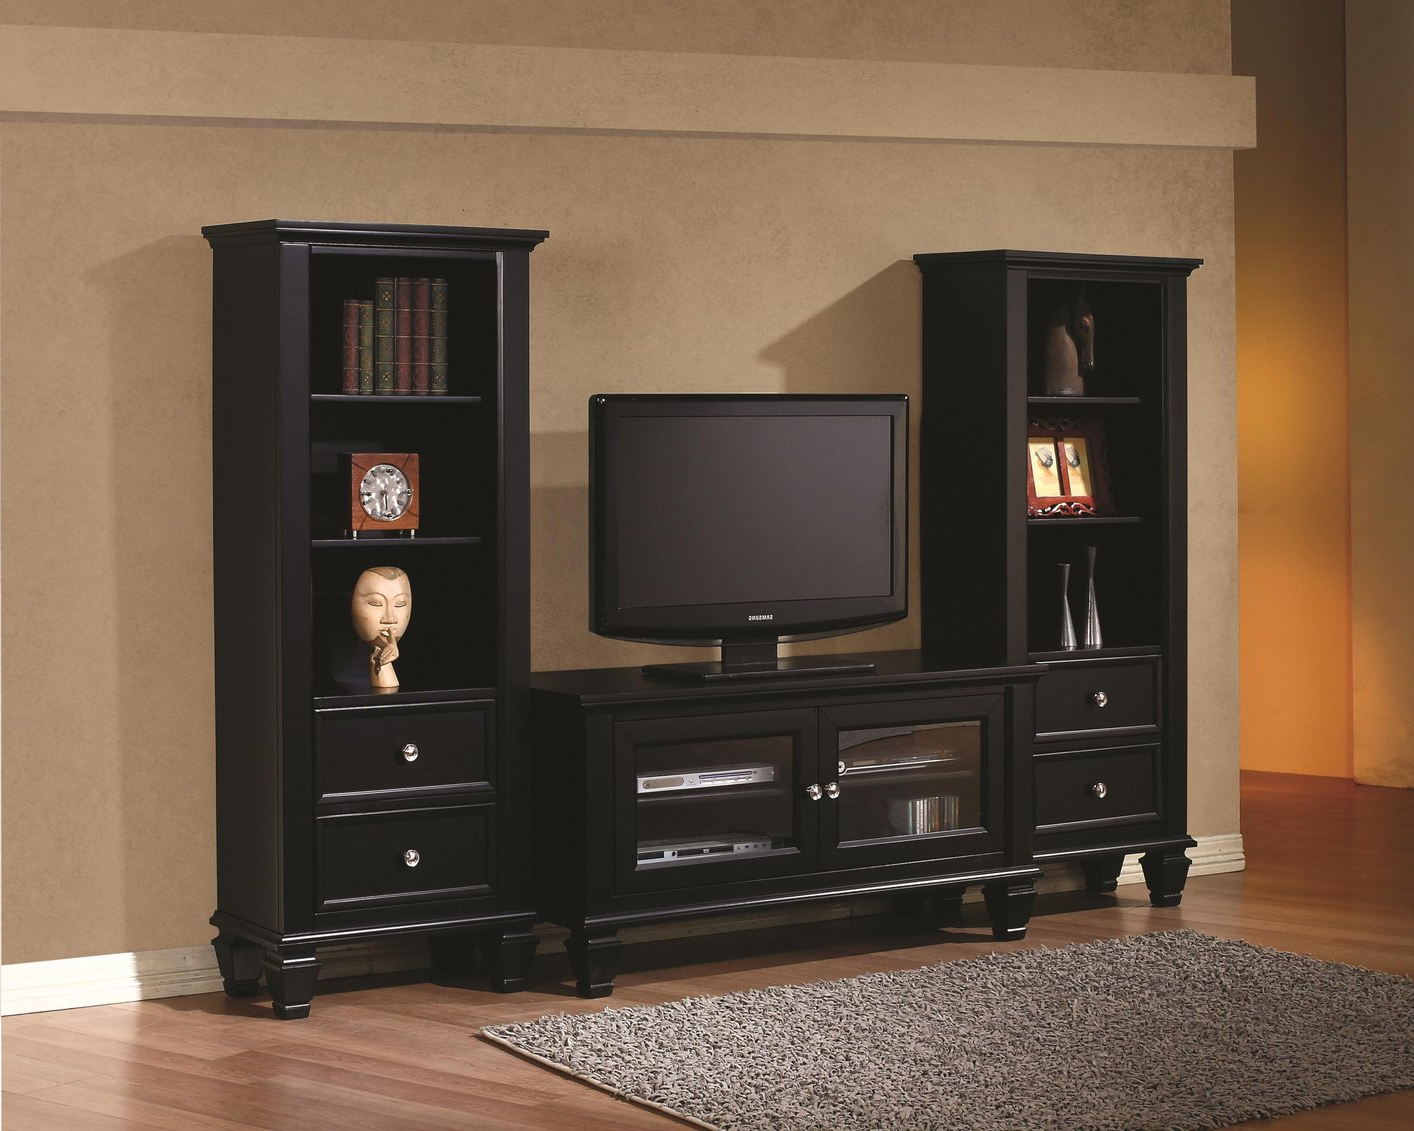 Recent Dark Wood Tv Stands Within Black Wood Tv Stand – Steal A Sofa Furniture Outlet Los Angeles Ca (View 16 of 20)